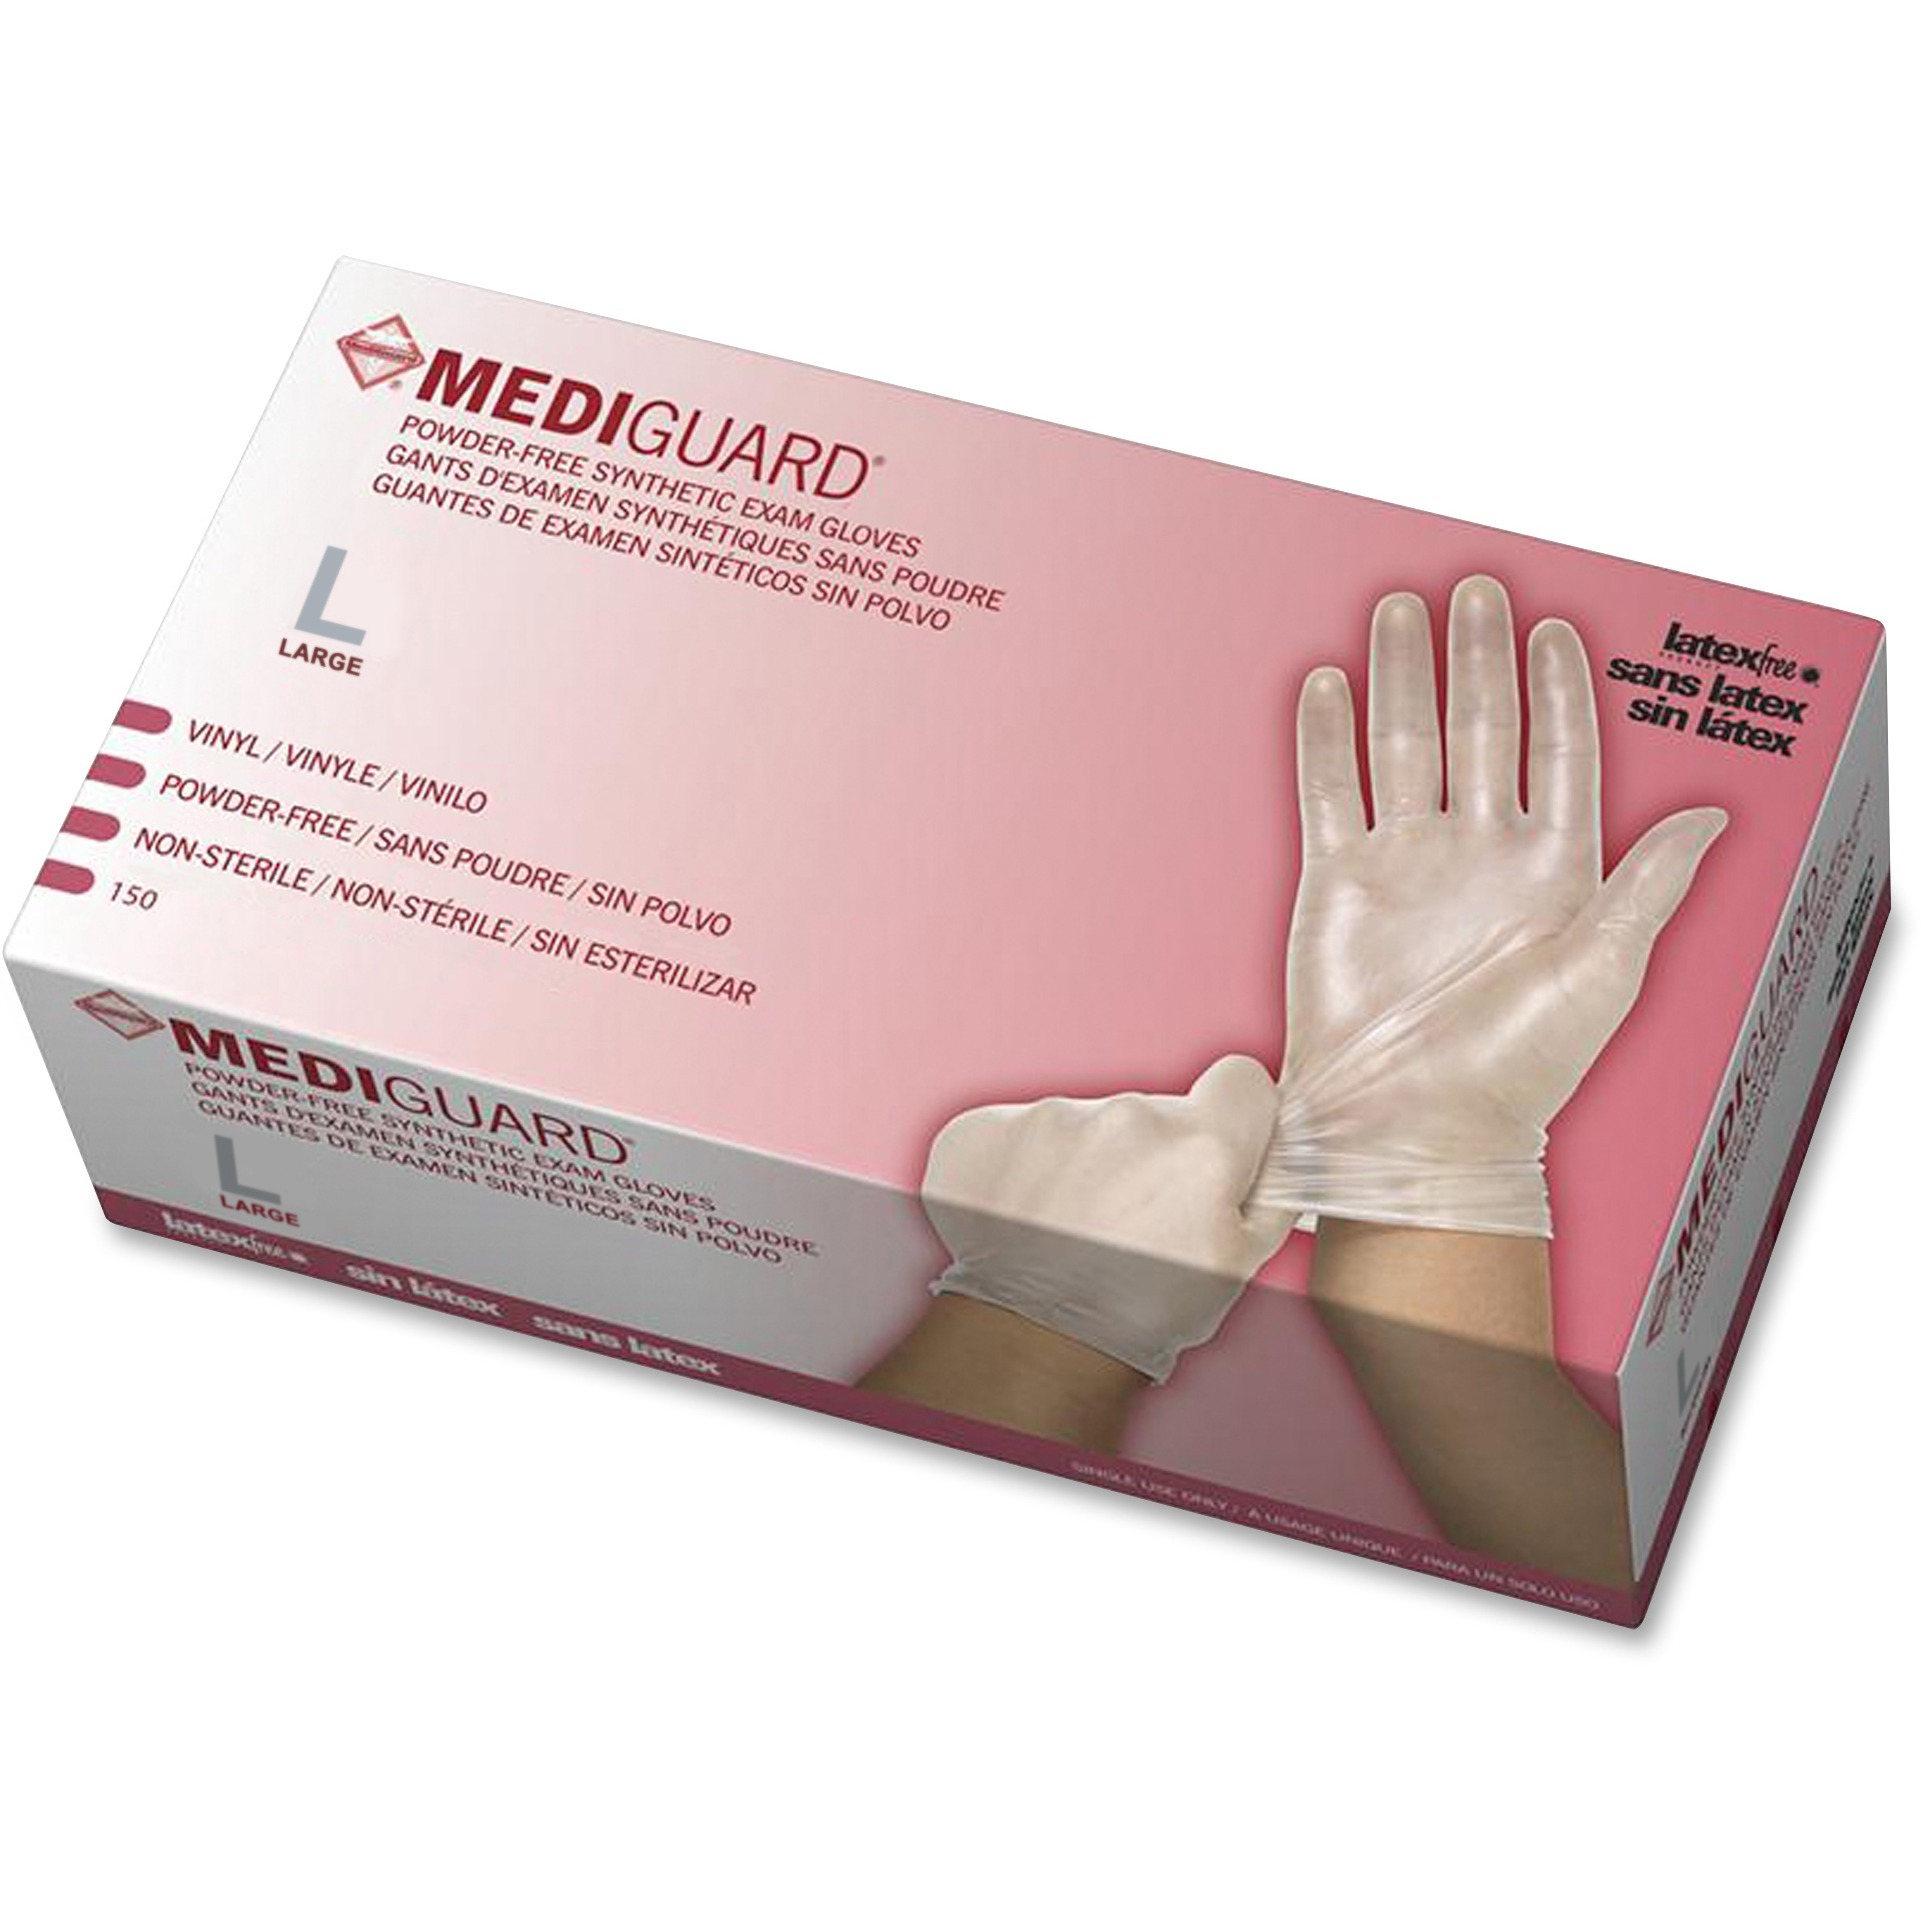 Medline, MII6MSV513, MediGuard Vinyl Non-sterile Exam Gloves, 150 / Box, Clear